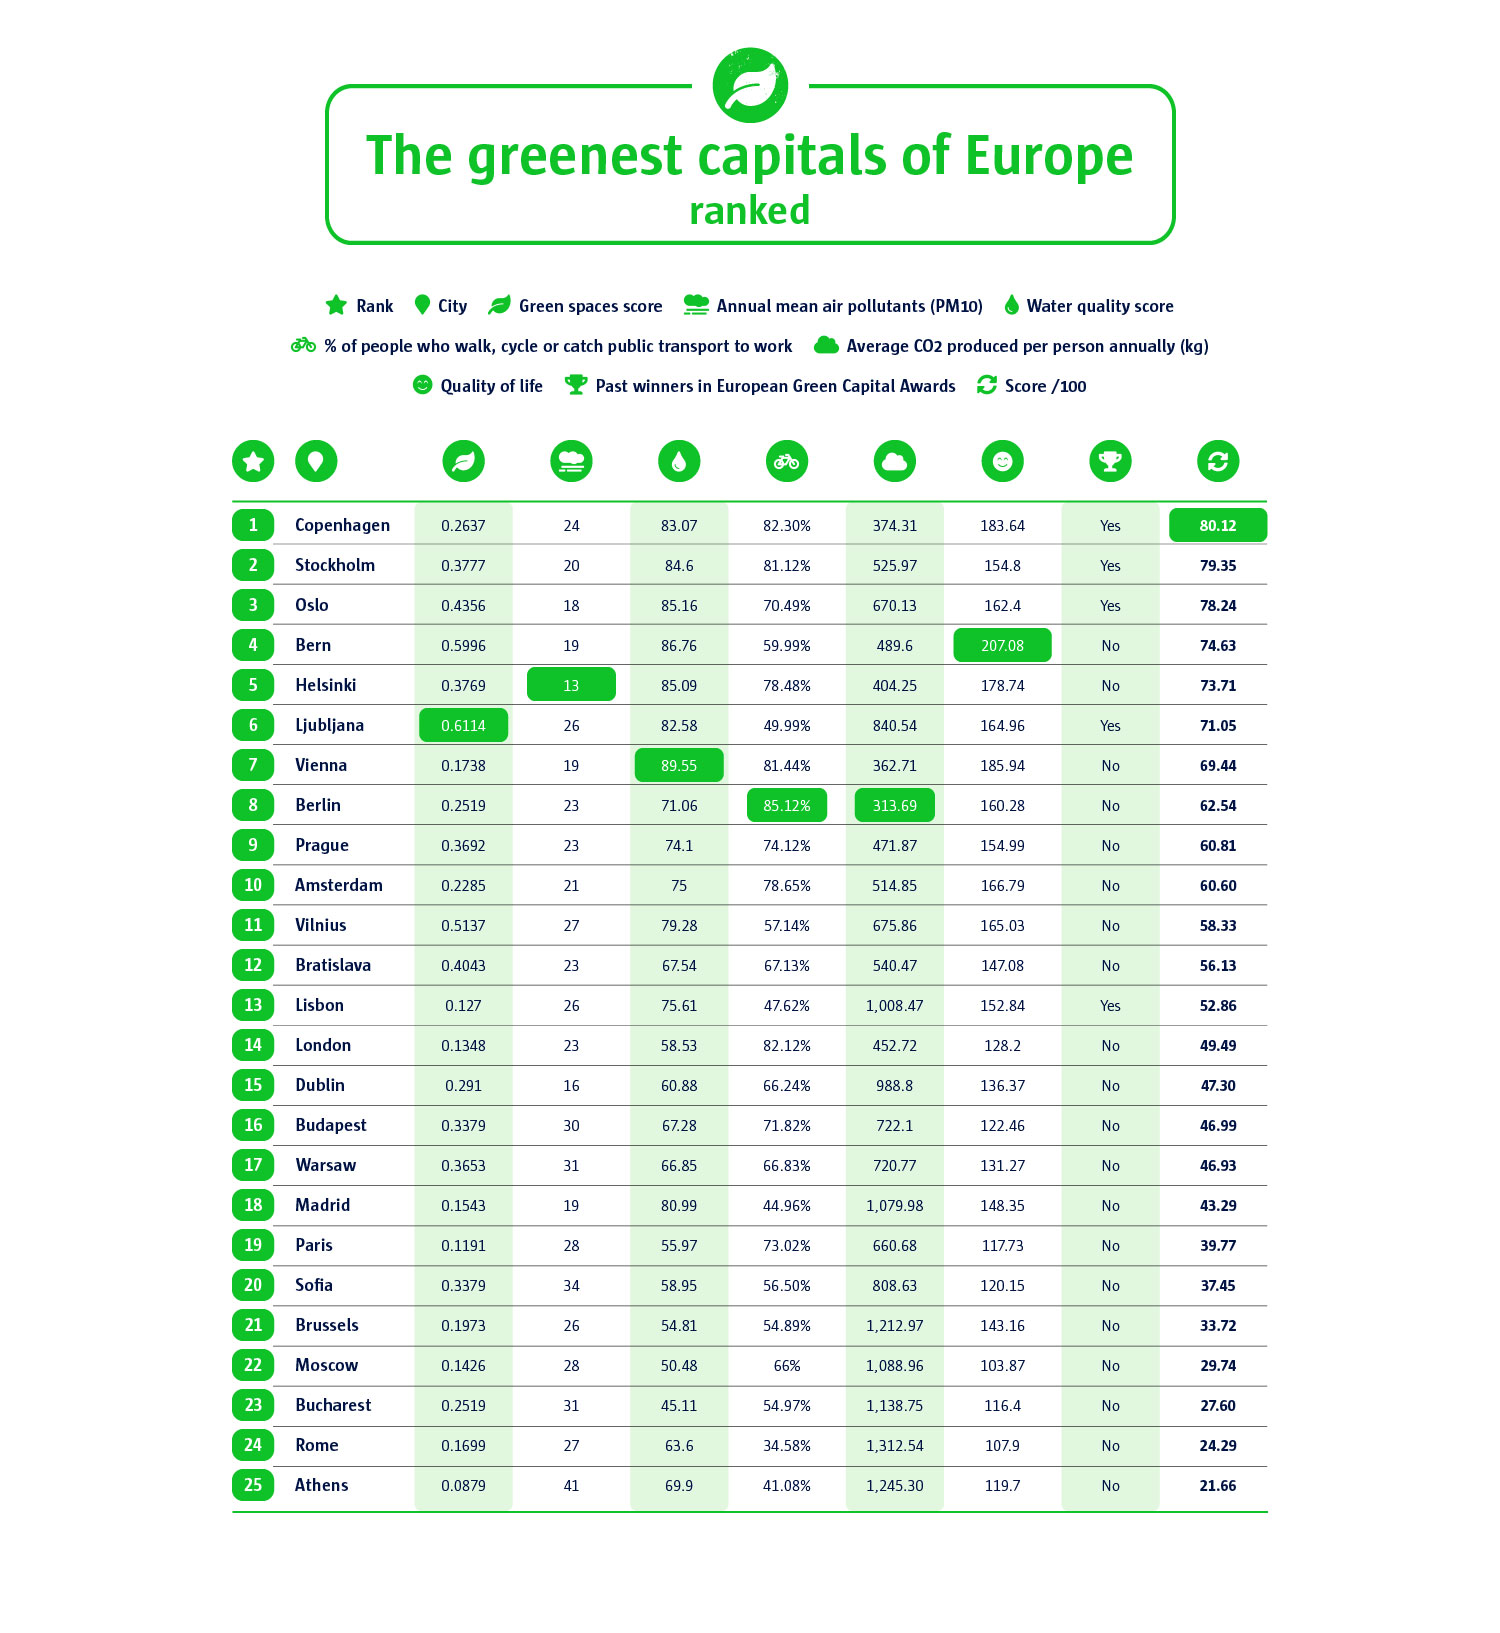 An infographic to show the 25 greenest capitals of Europe.